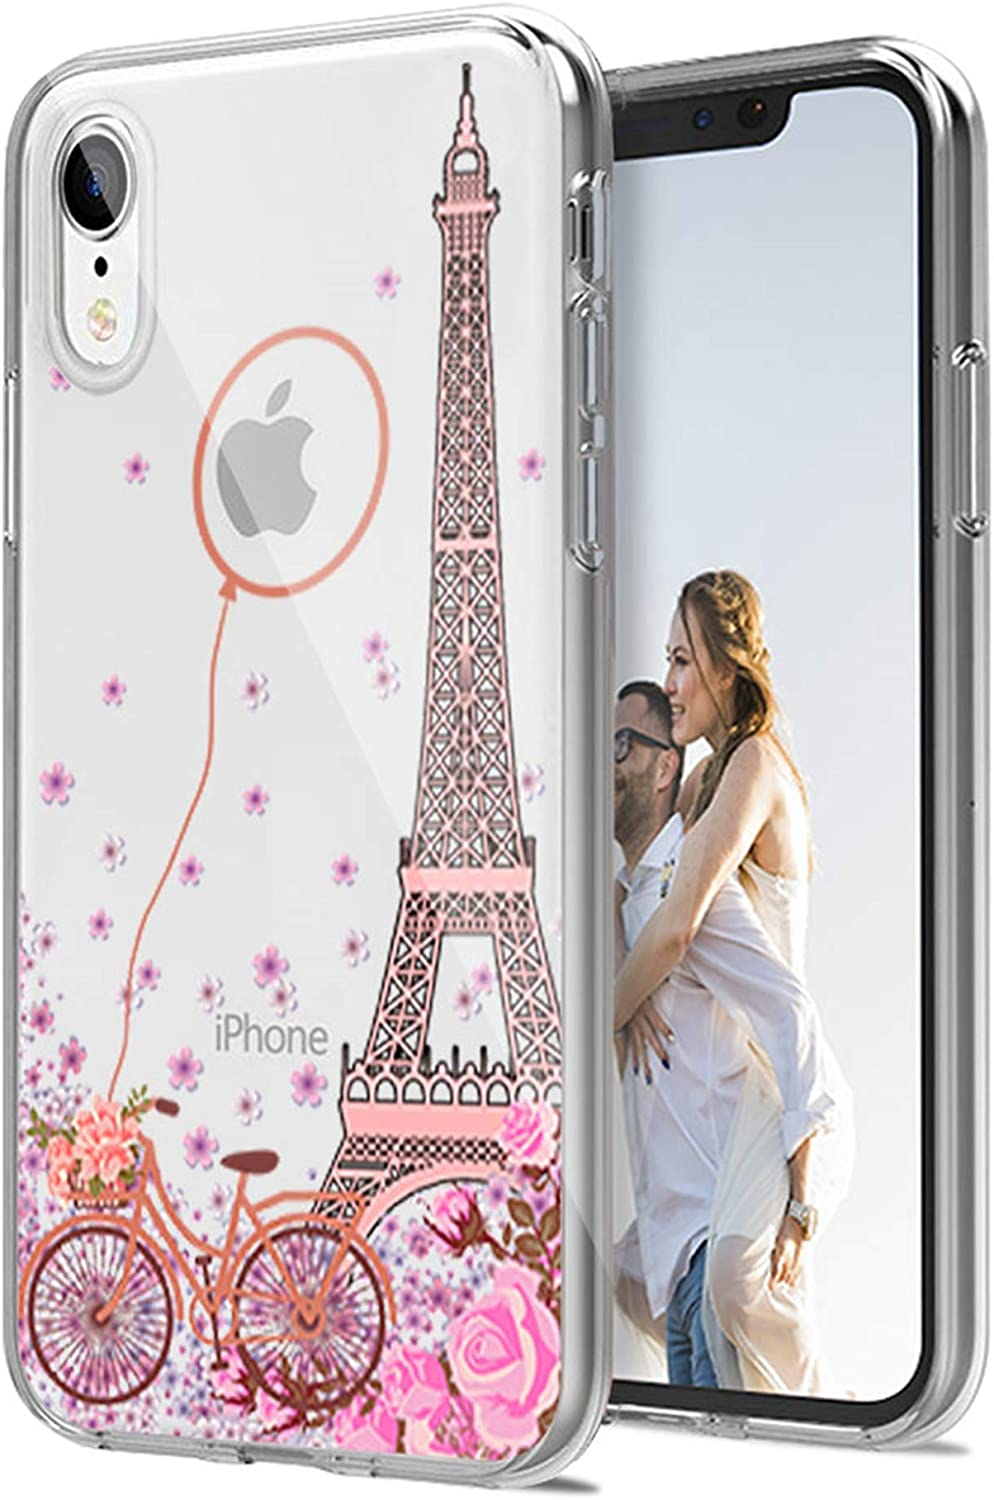 Cocomong Paris Eiffel Tower Clear Phone Case Compatible with iPhone XR Cases for Women Girls Designer Pink Floral Flower Cute Paris Decor Gifts, Slim Fit Thin Soft TPU Silicone Cover Protective 6.1